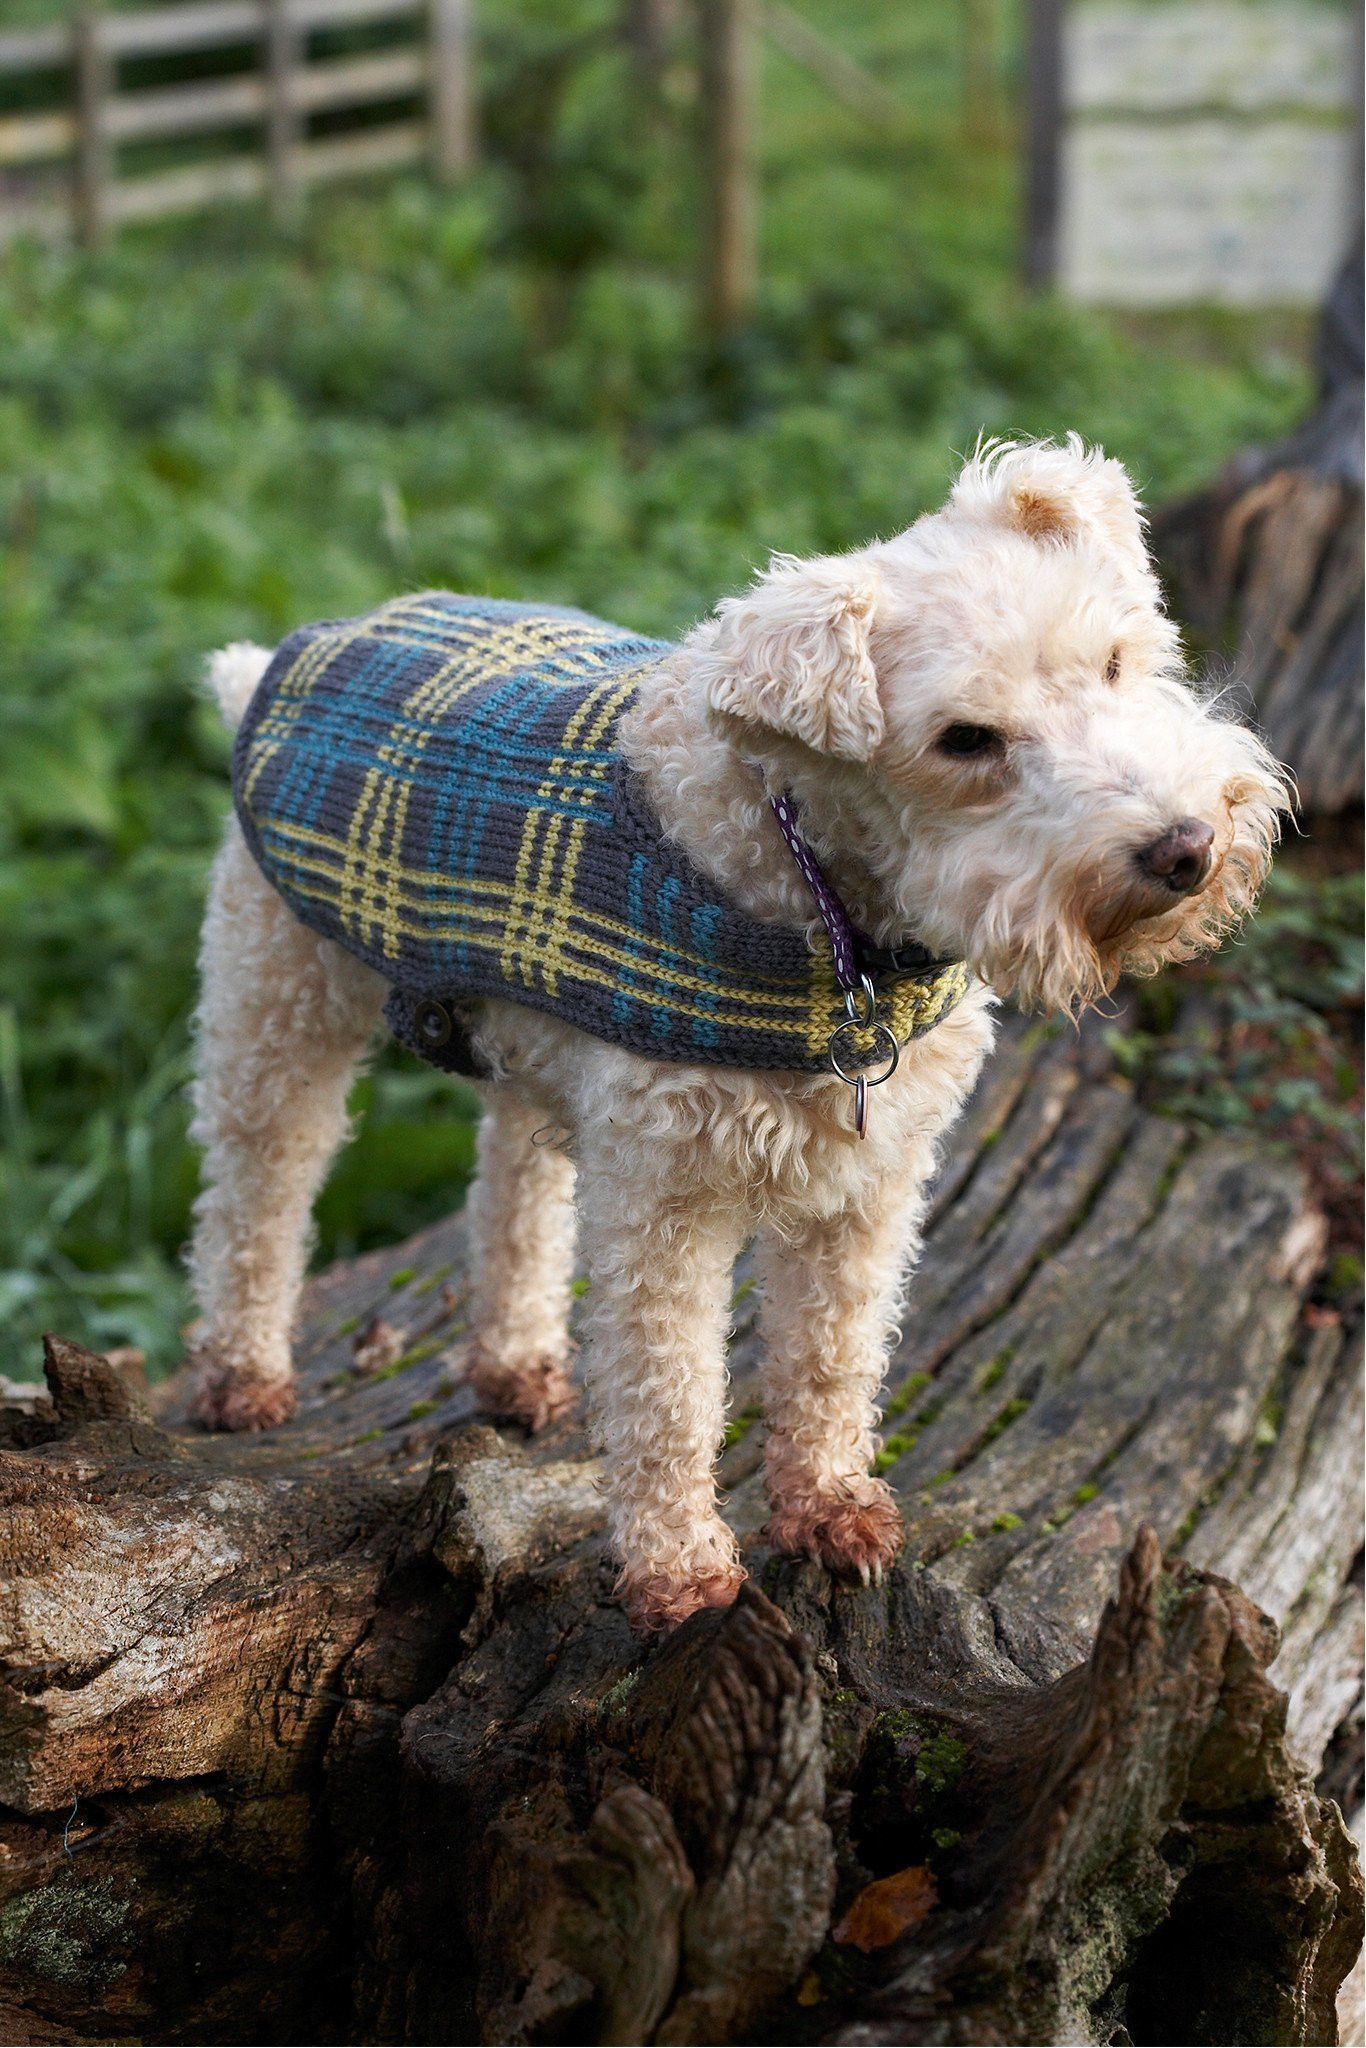 Vintage Dog Coat With Plaid Design Knitting Pattern | The ...